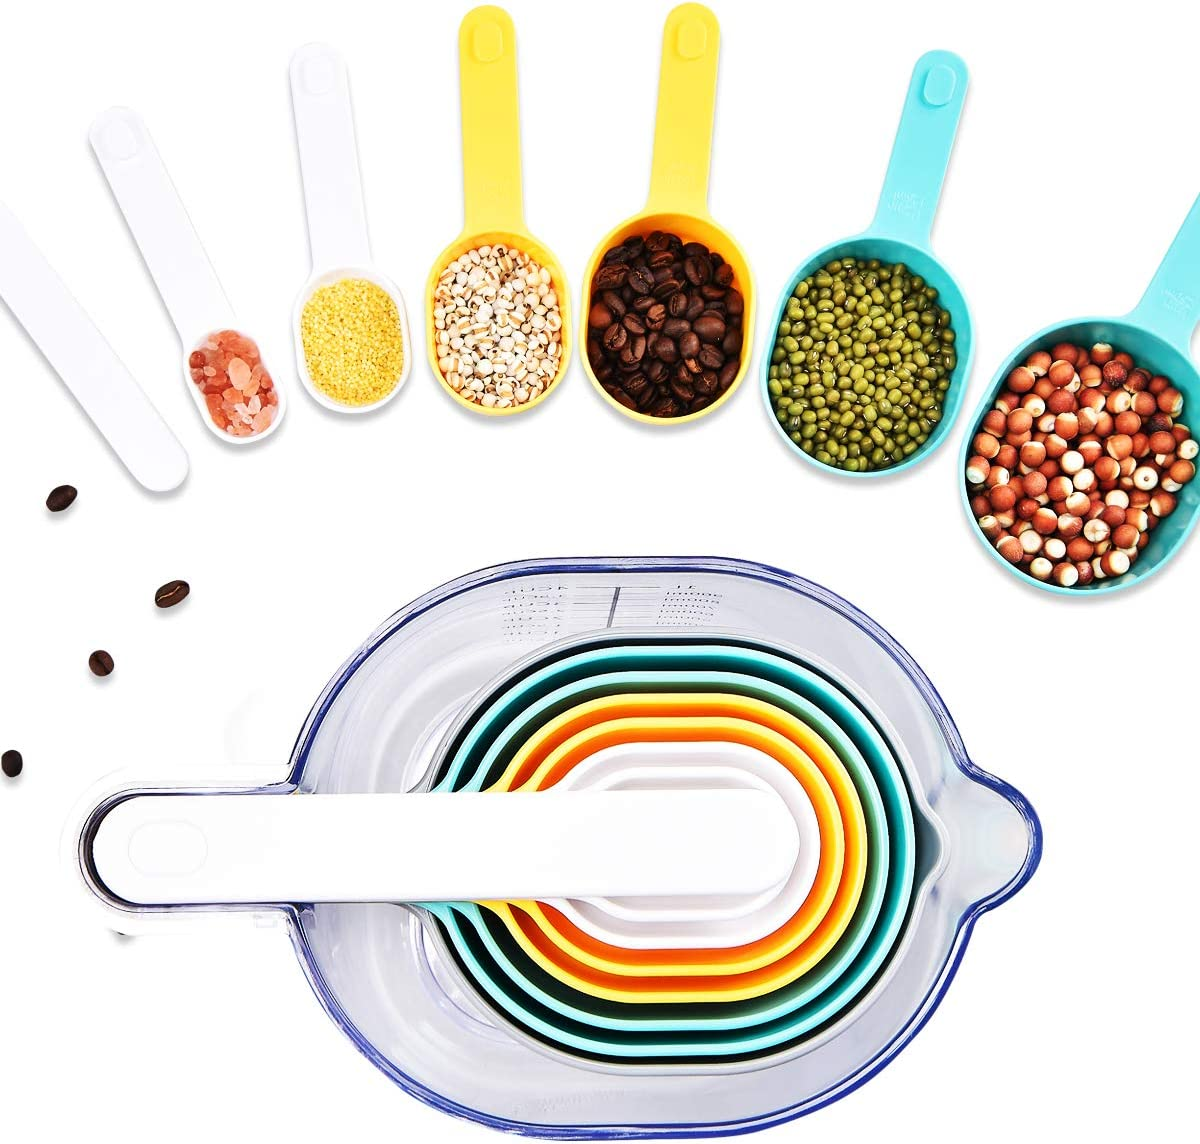 FAVIA Measuring Cup and Measuring Spoons Set with One Scraper One Funnel 9 Pieces Plastic Cooking Baking Kitchen Utensil BPA Free Dishwasher Safe